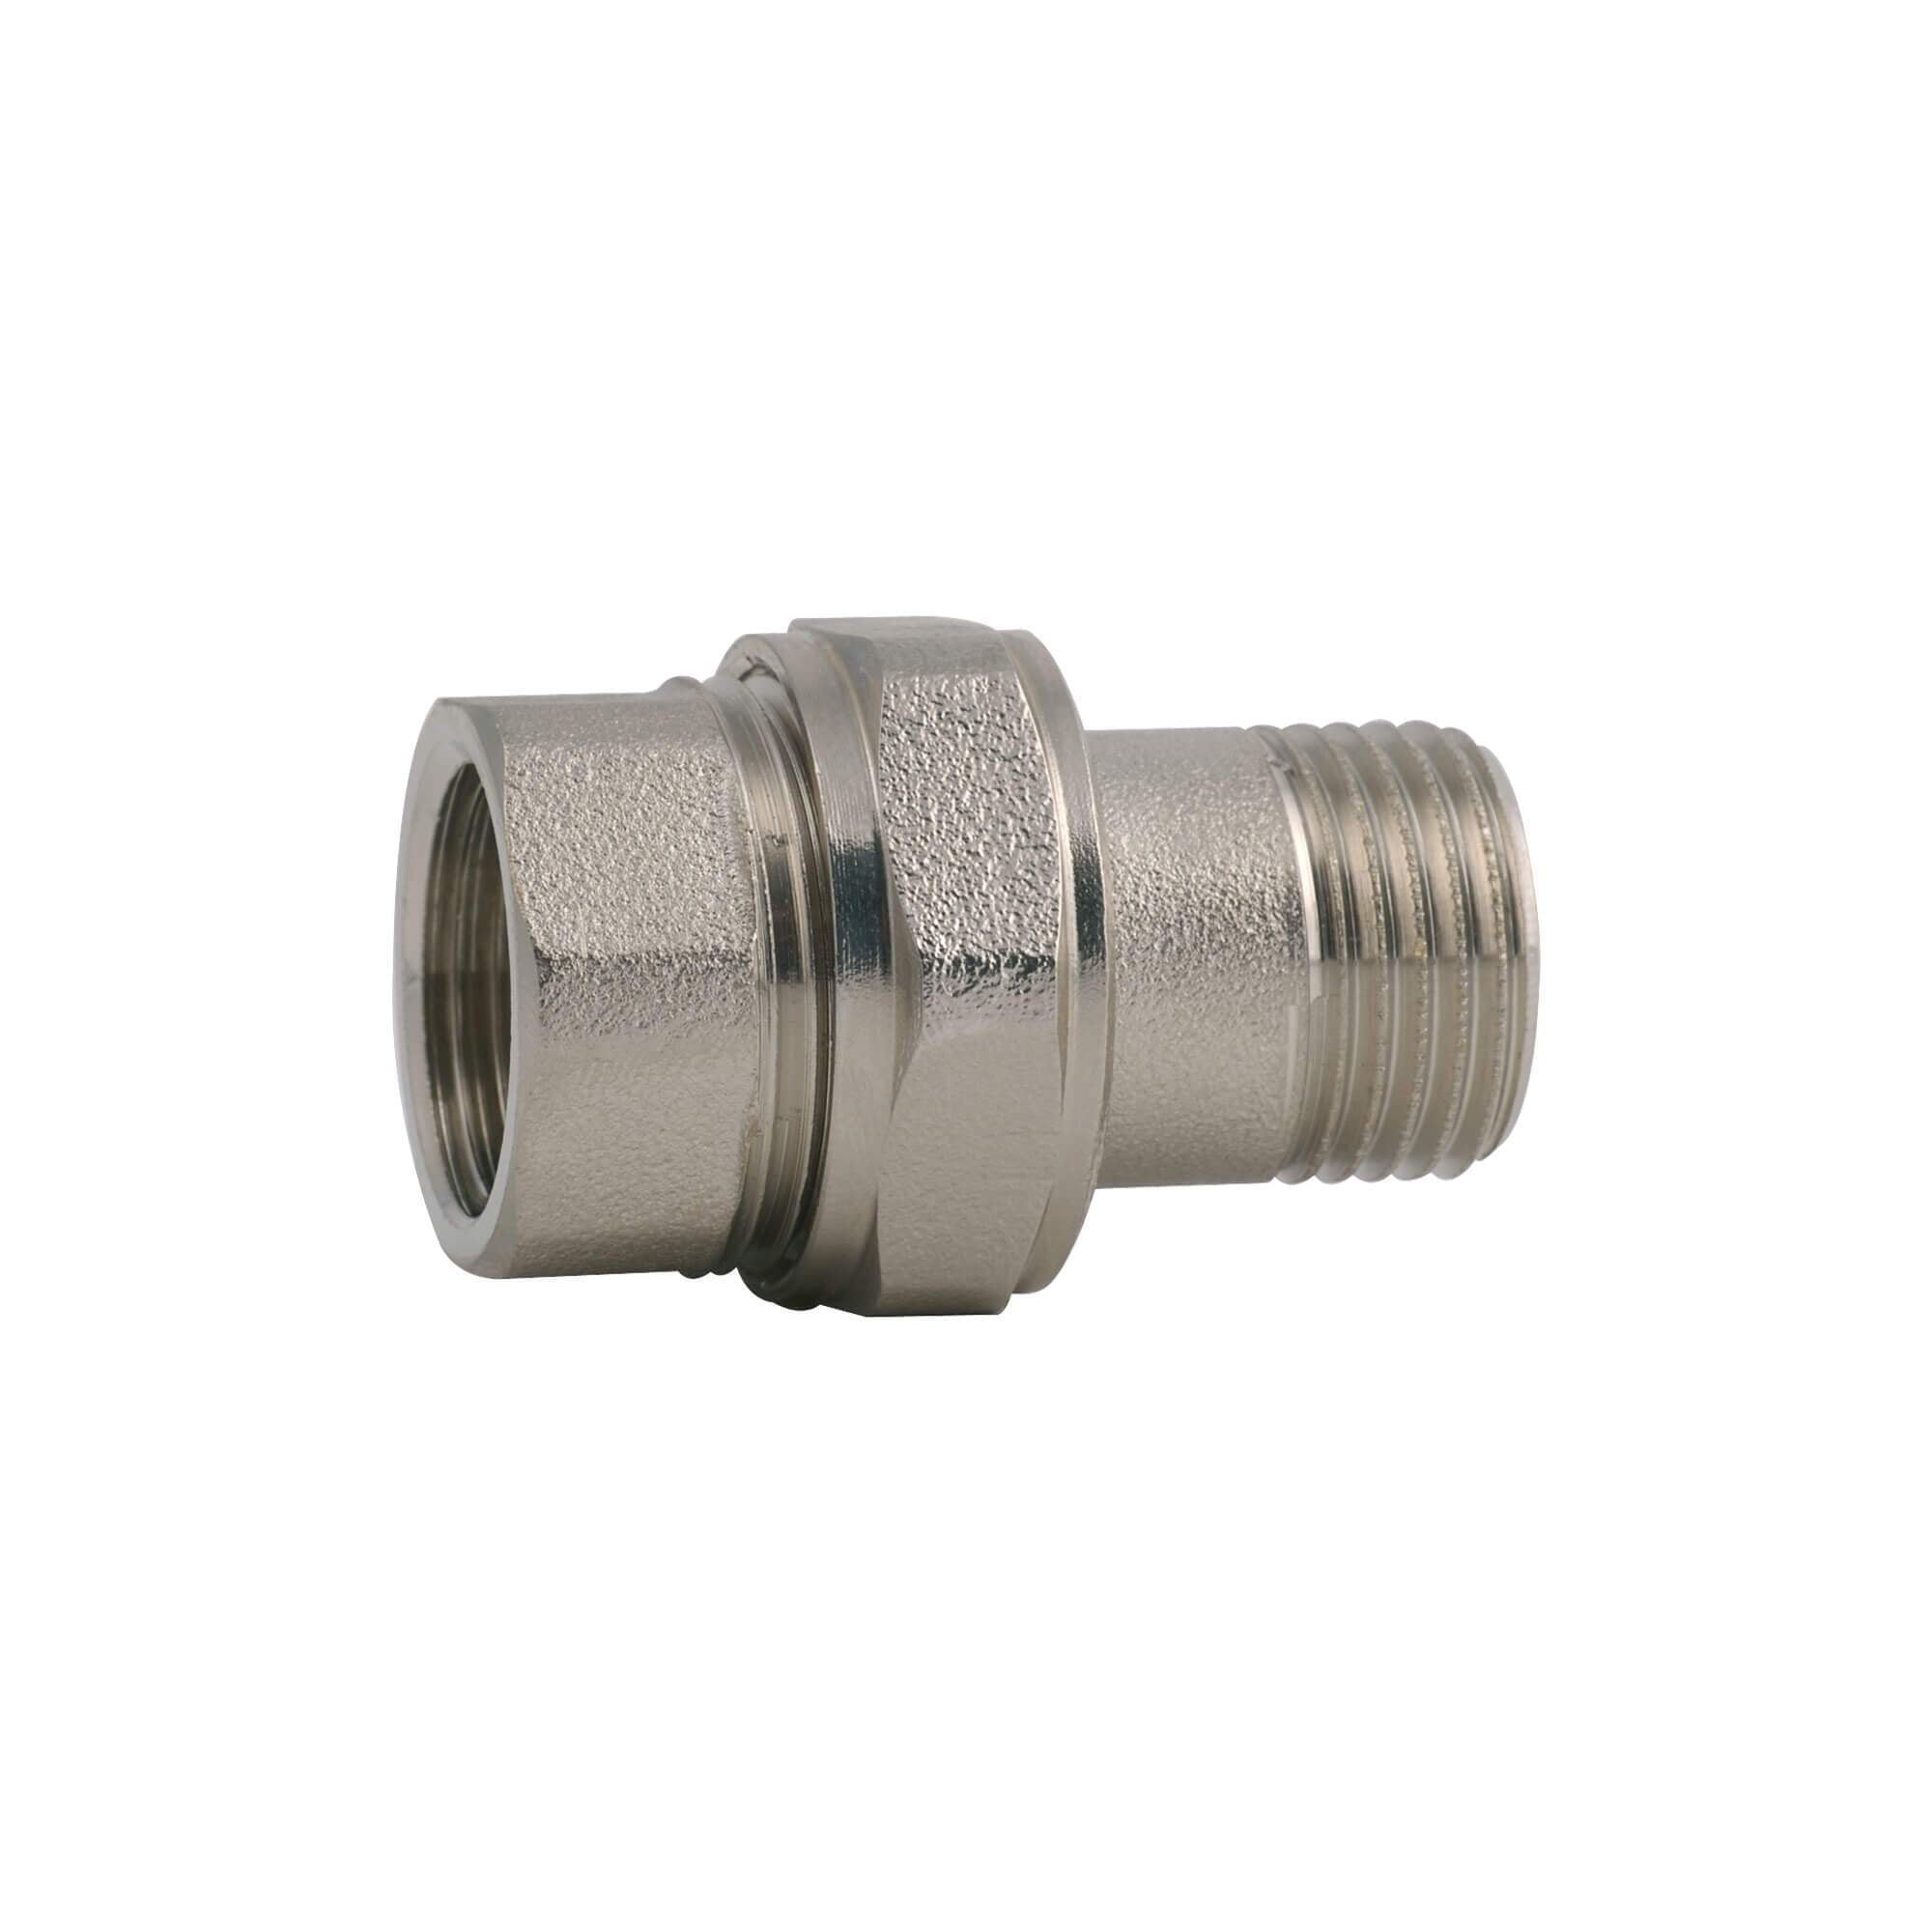 "UNIÓN RECTA CONICA DESCONEXION 1/2""-IMPA SCL"